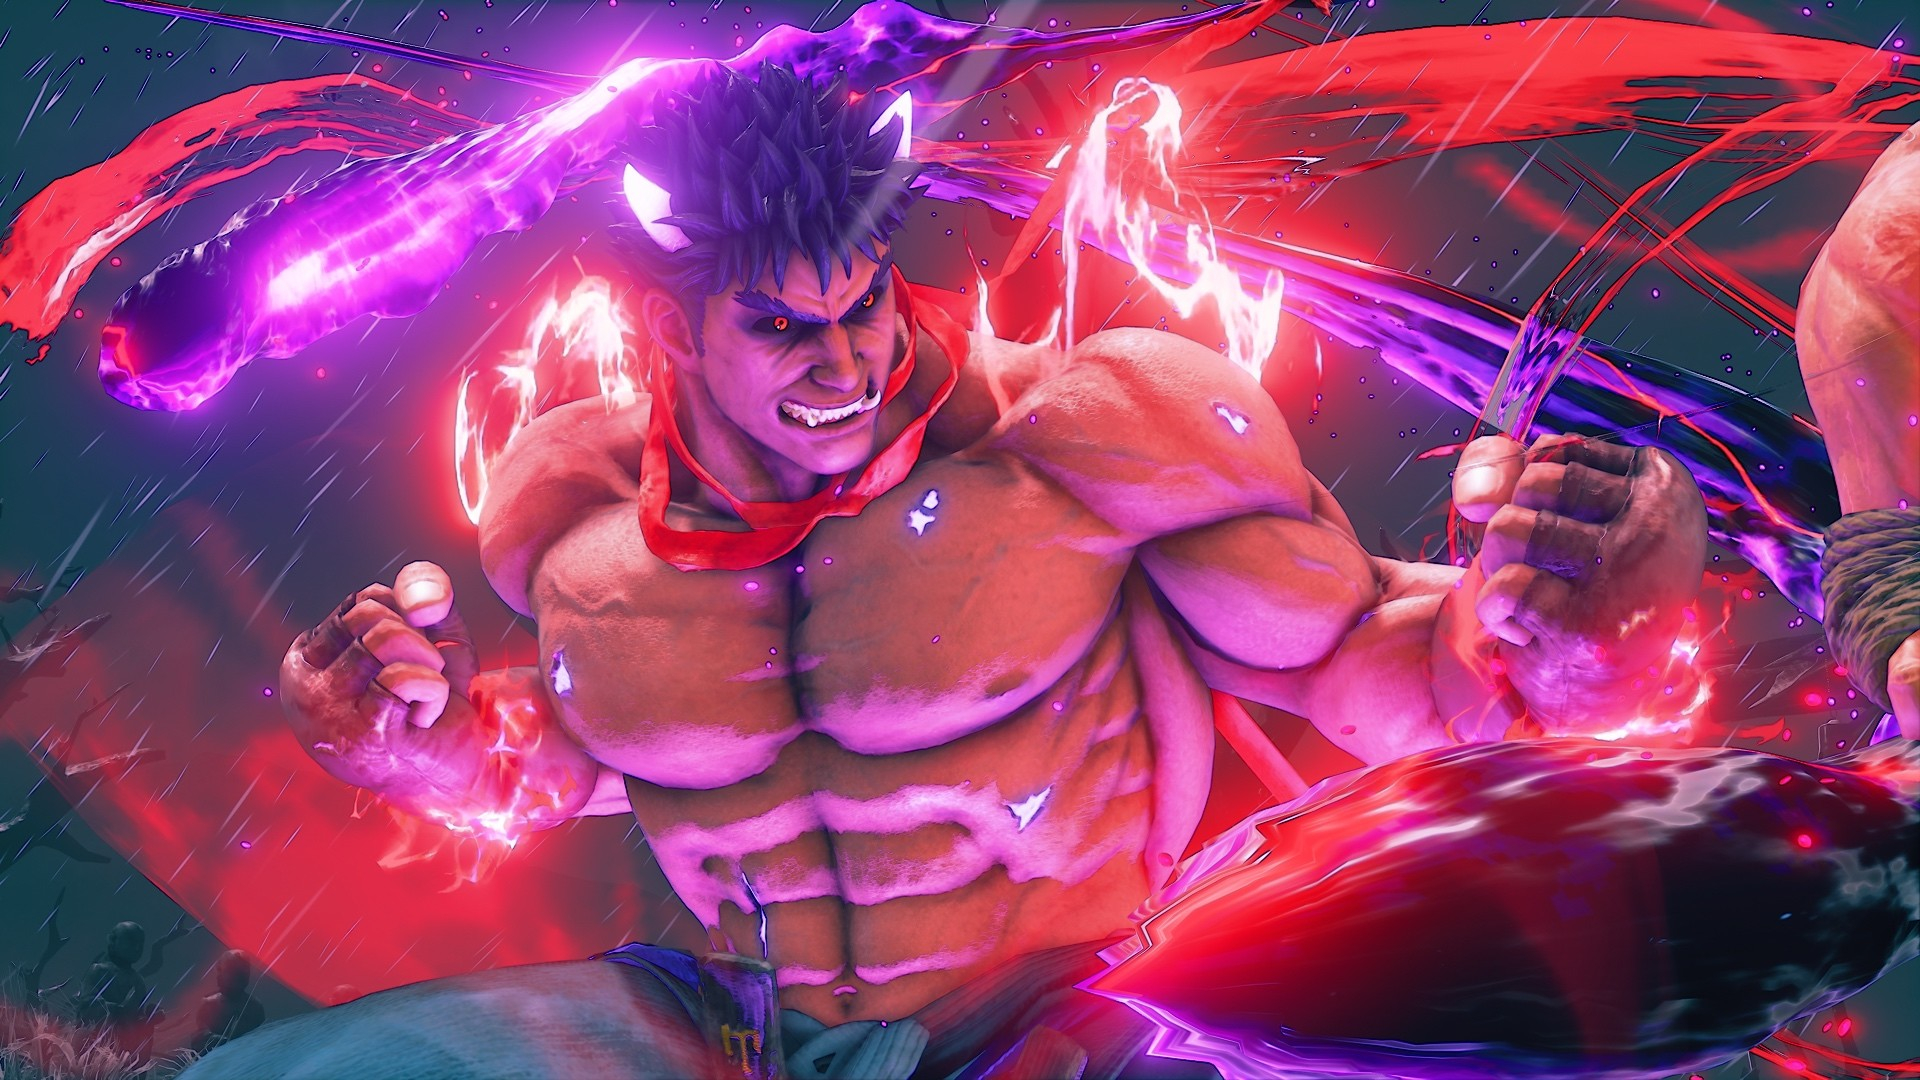 1920x1080 Street Fighter 5 - Kage Capcom